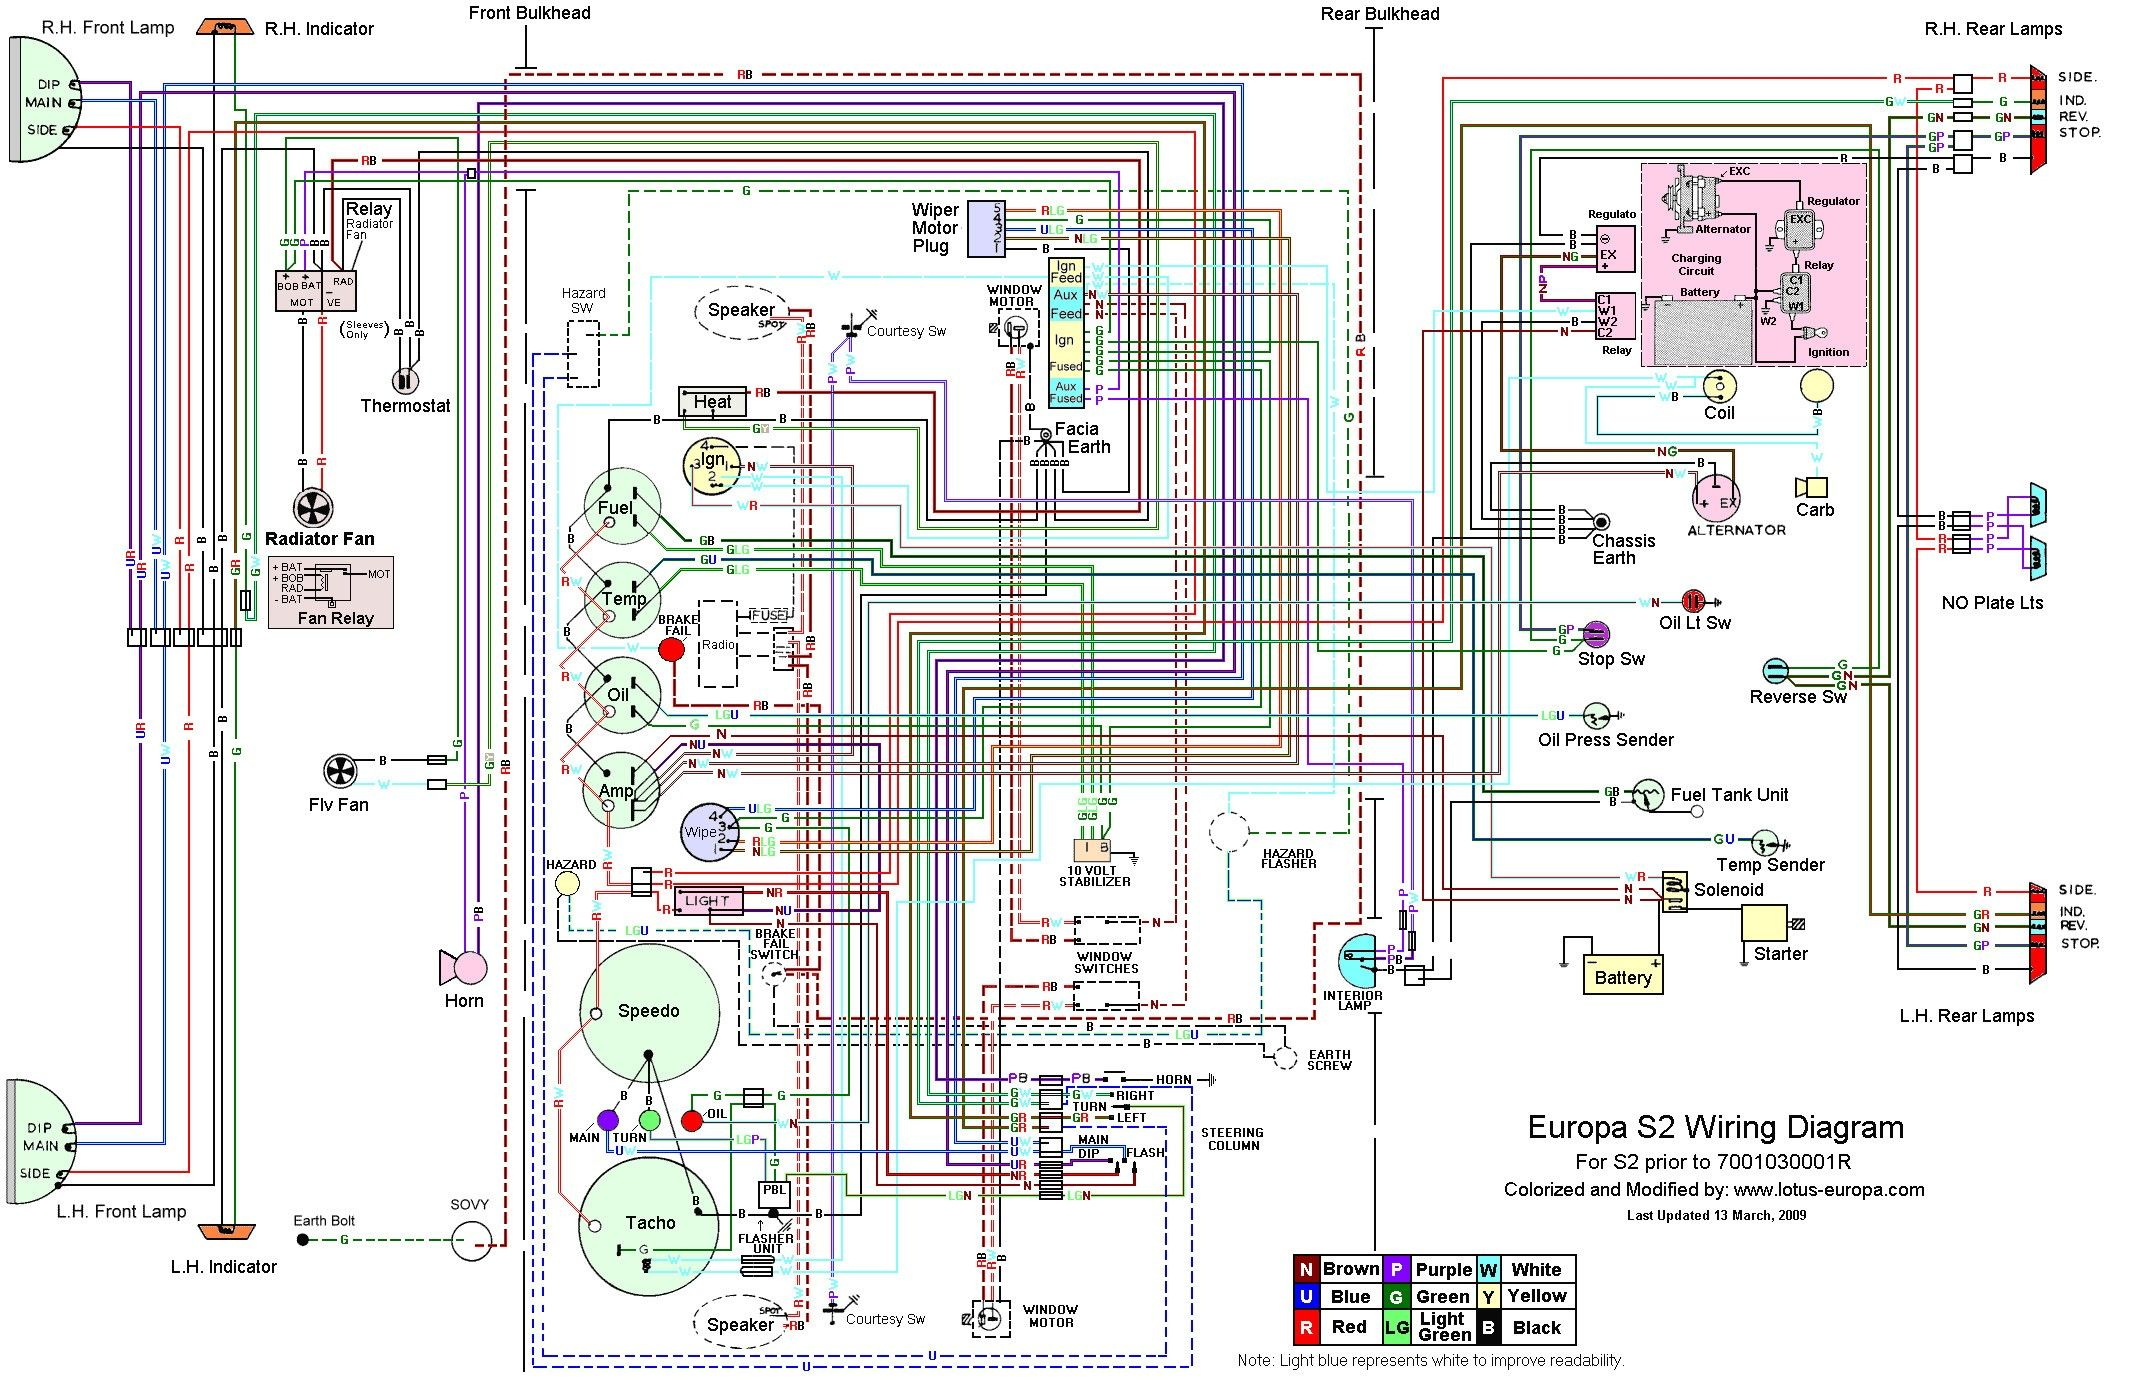 medium resolution of renault clio wiring diagram wiring diagram datasource renault clio 2 wiring diagram download renault clio 2 wiring diagram